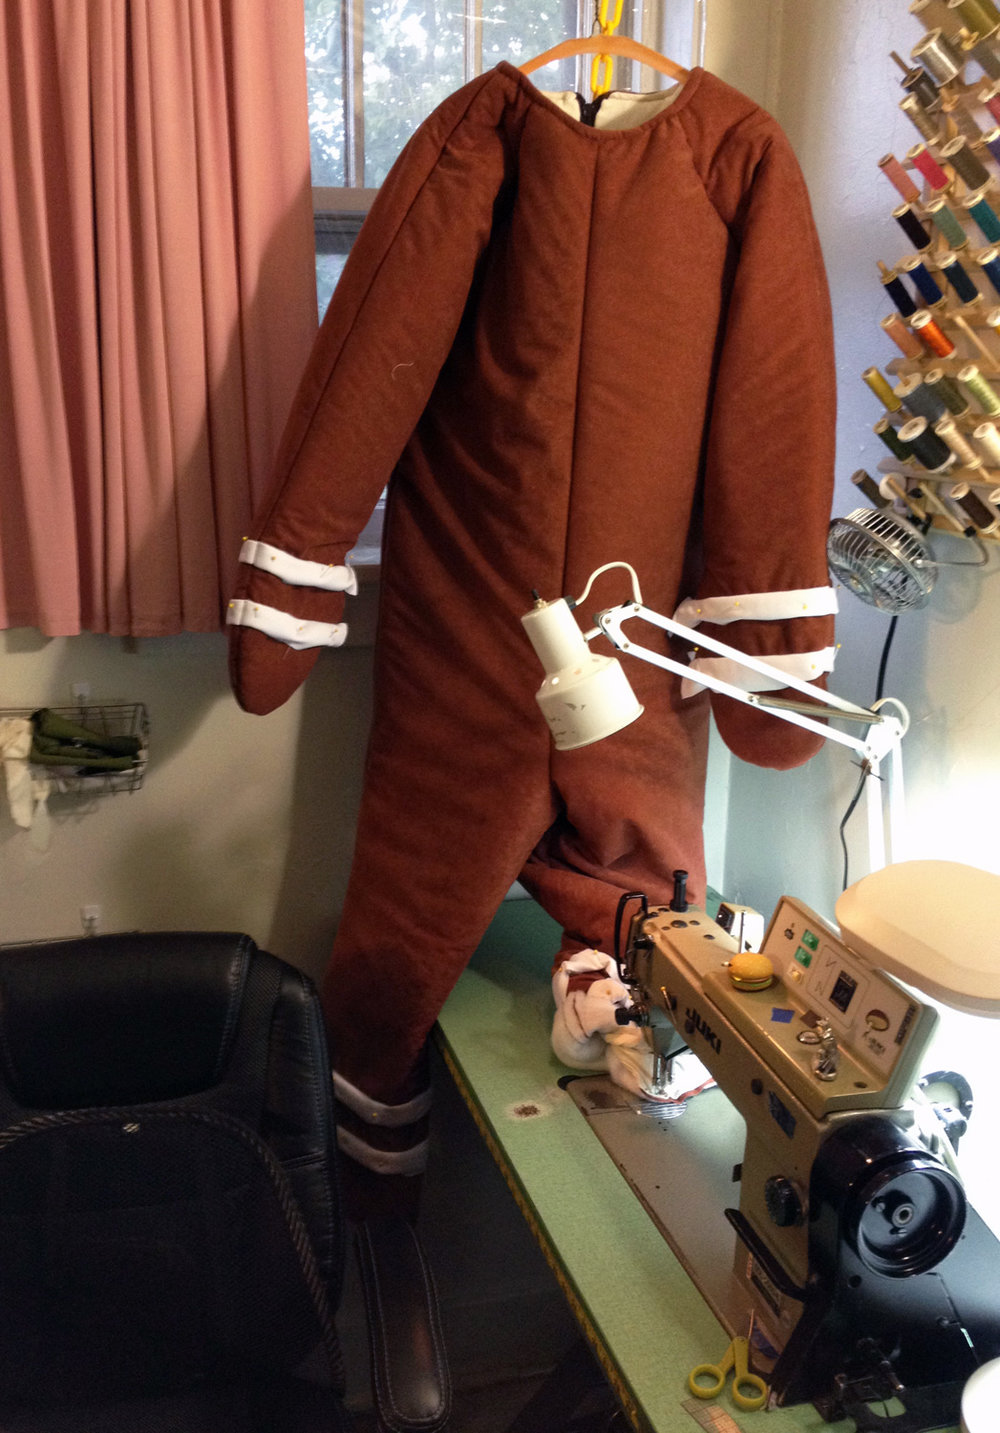 jen-rocket-costume-scarehouse-sew-gingerbreadman.jpg